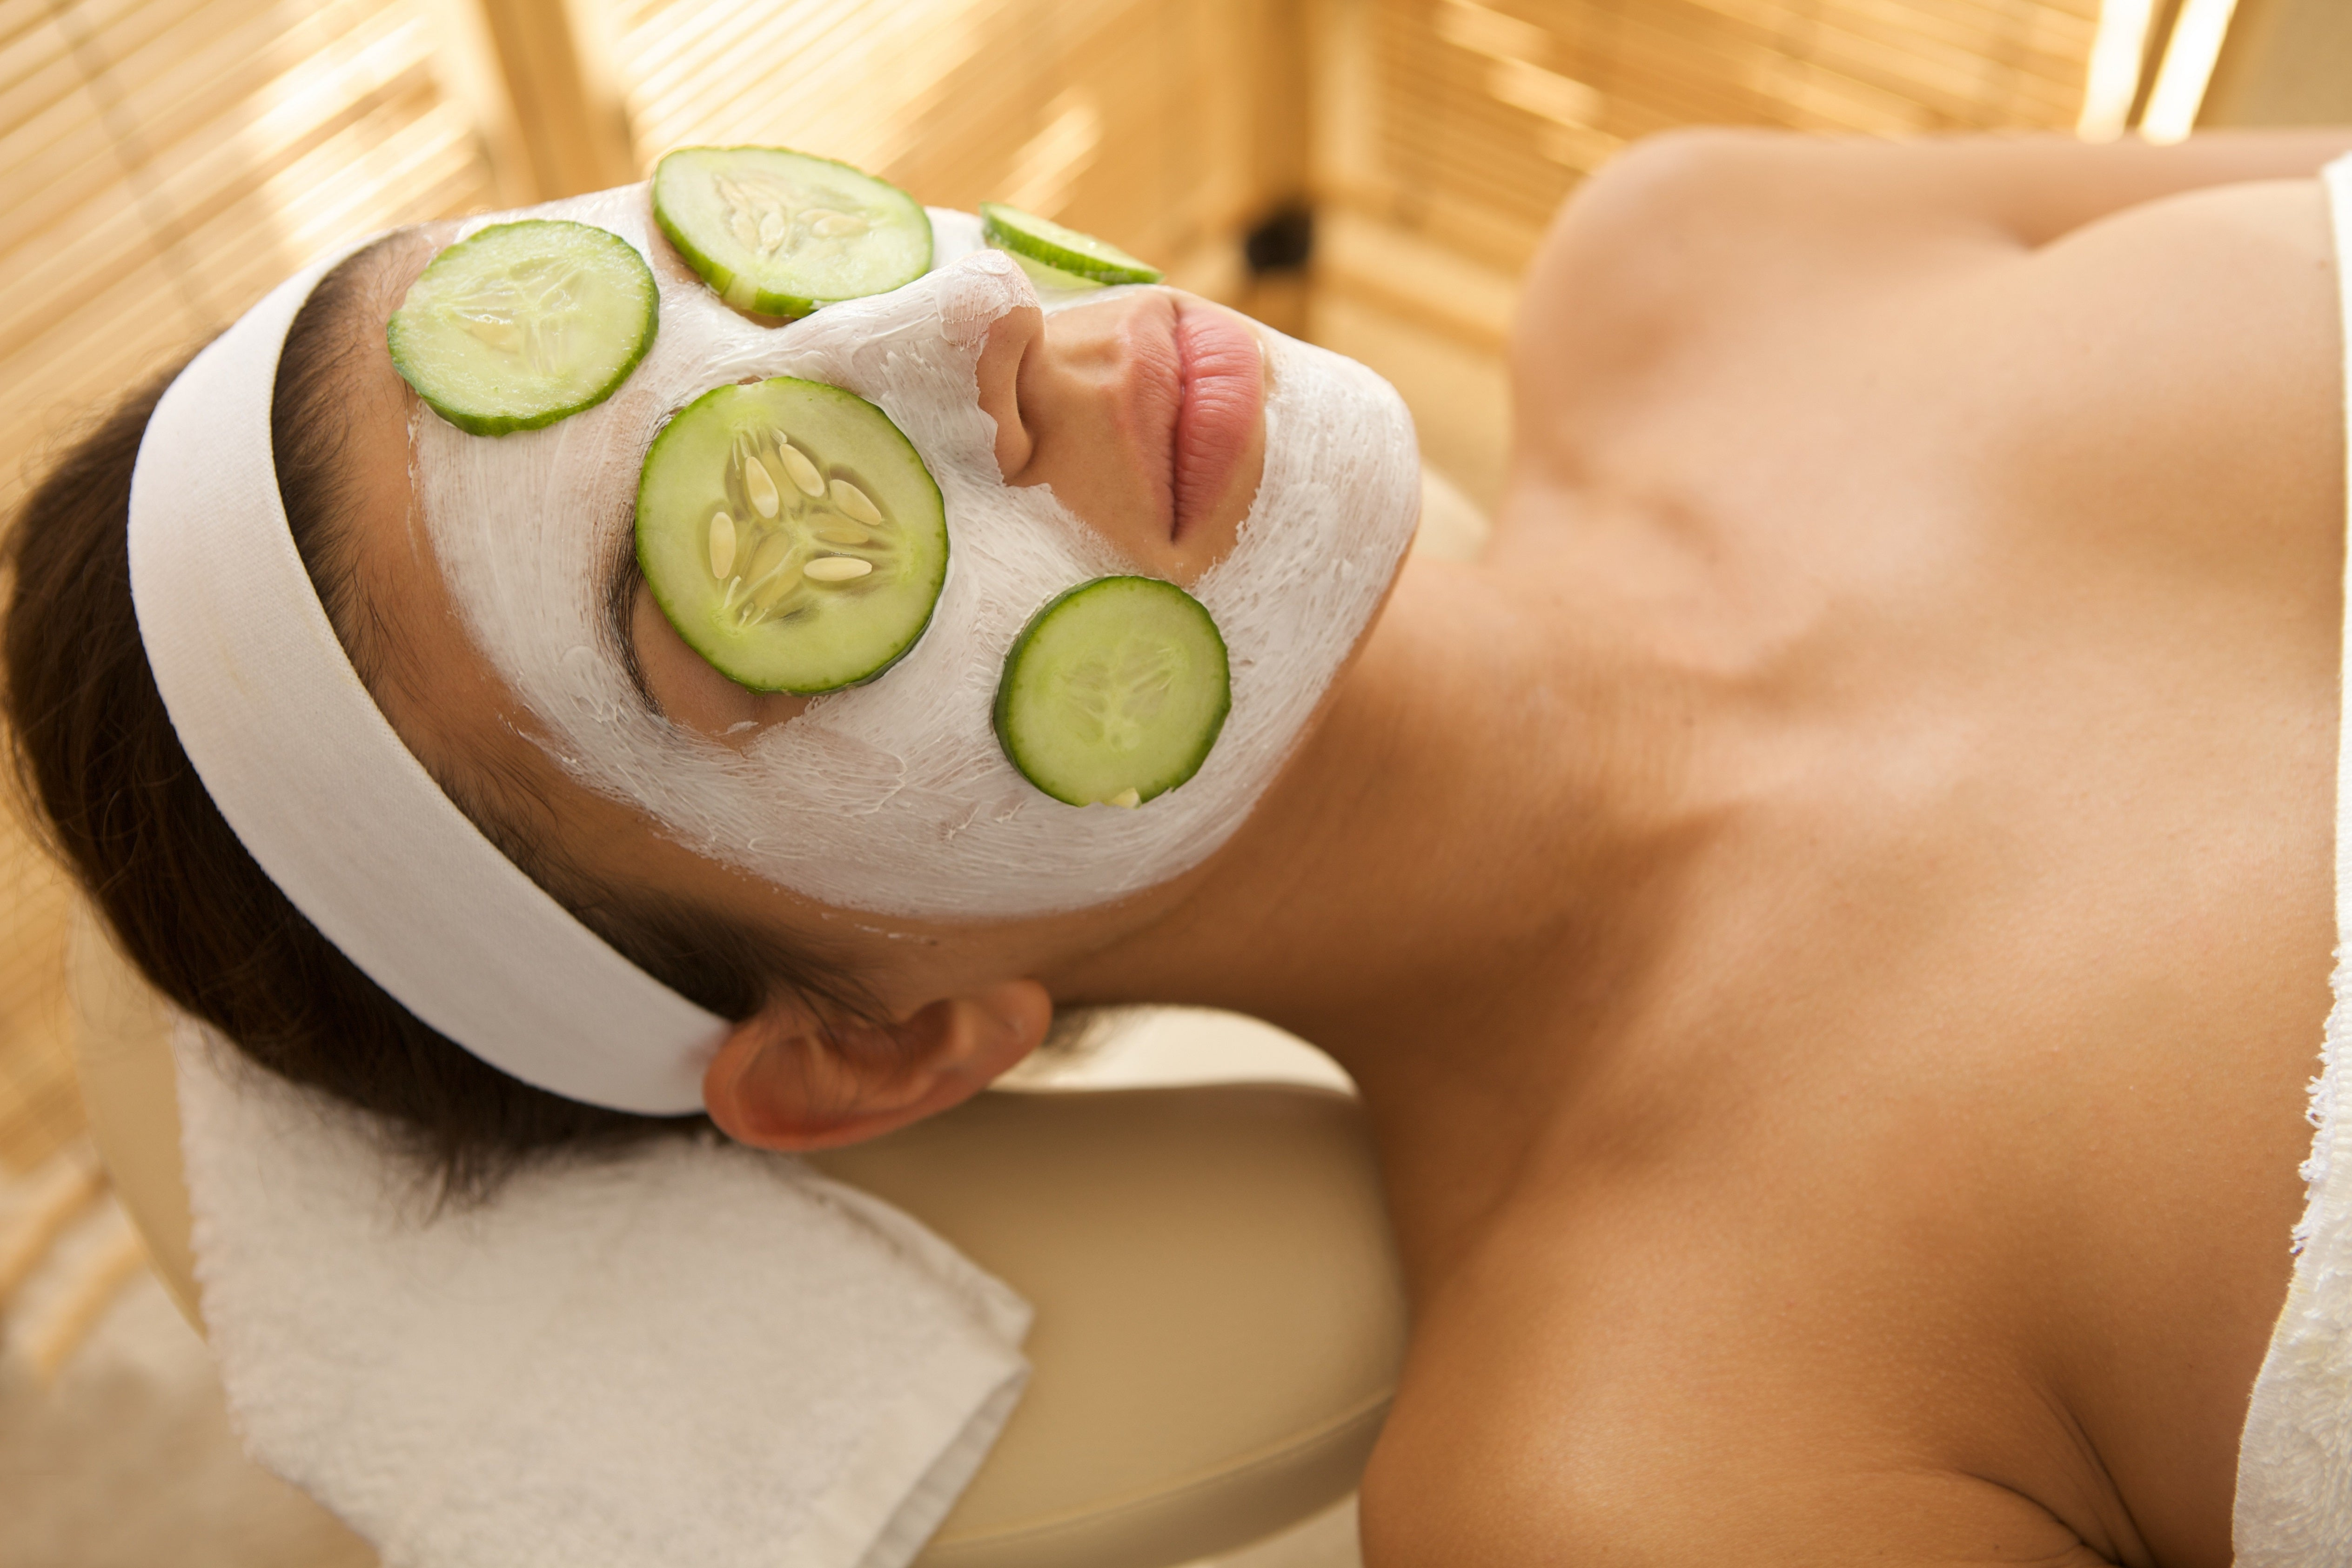 woman with applied facial mask cream and cucumber on face